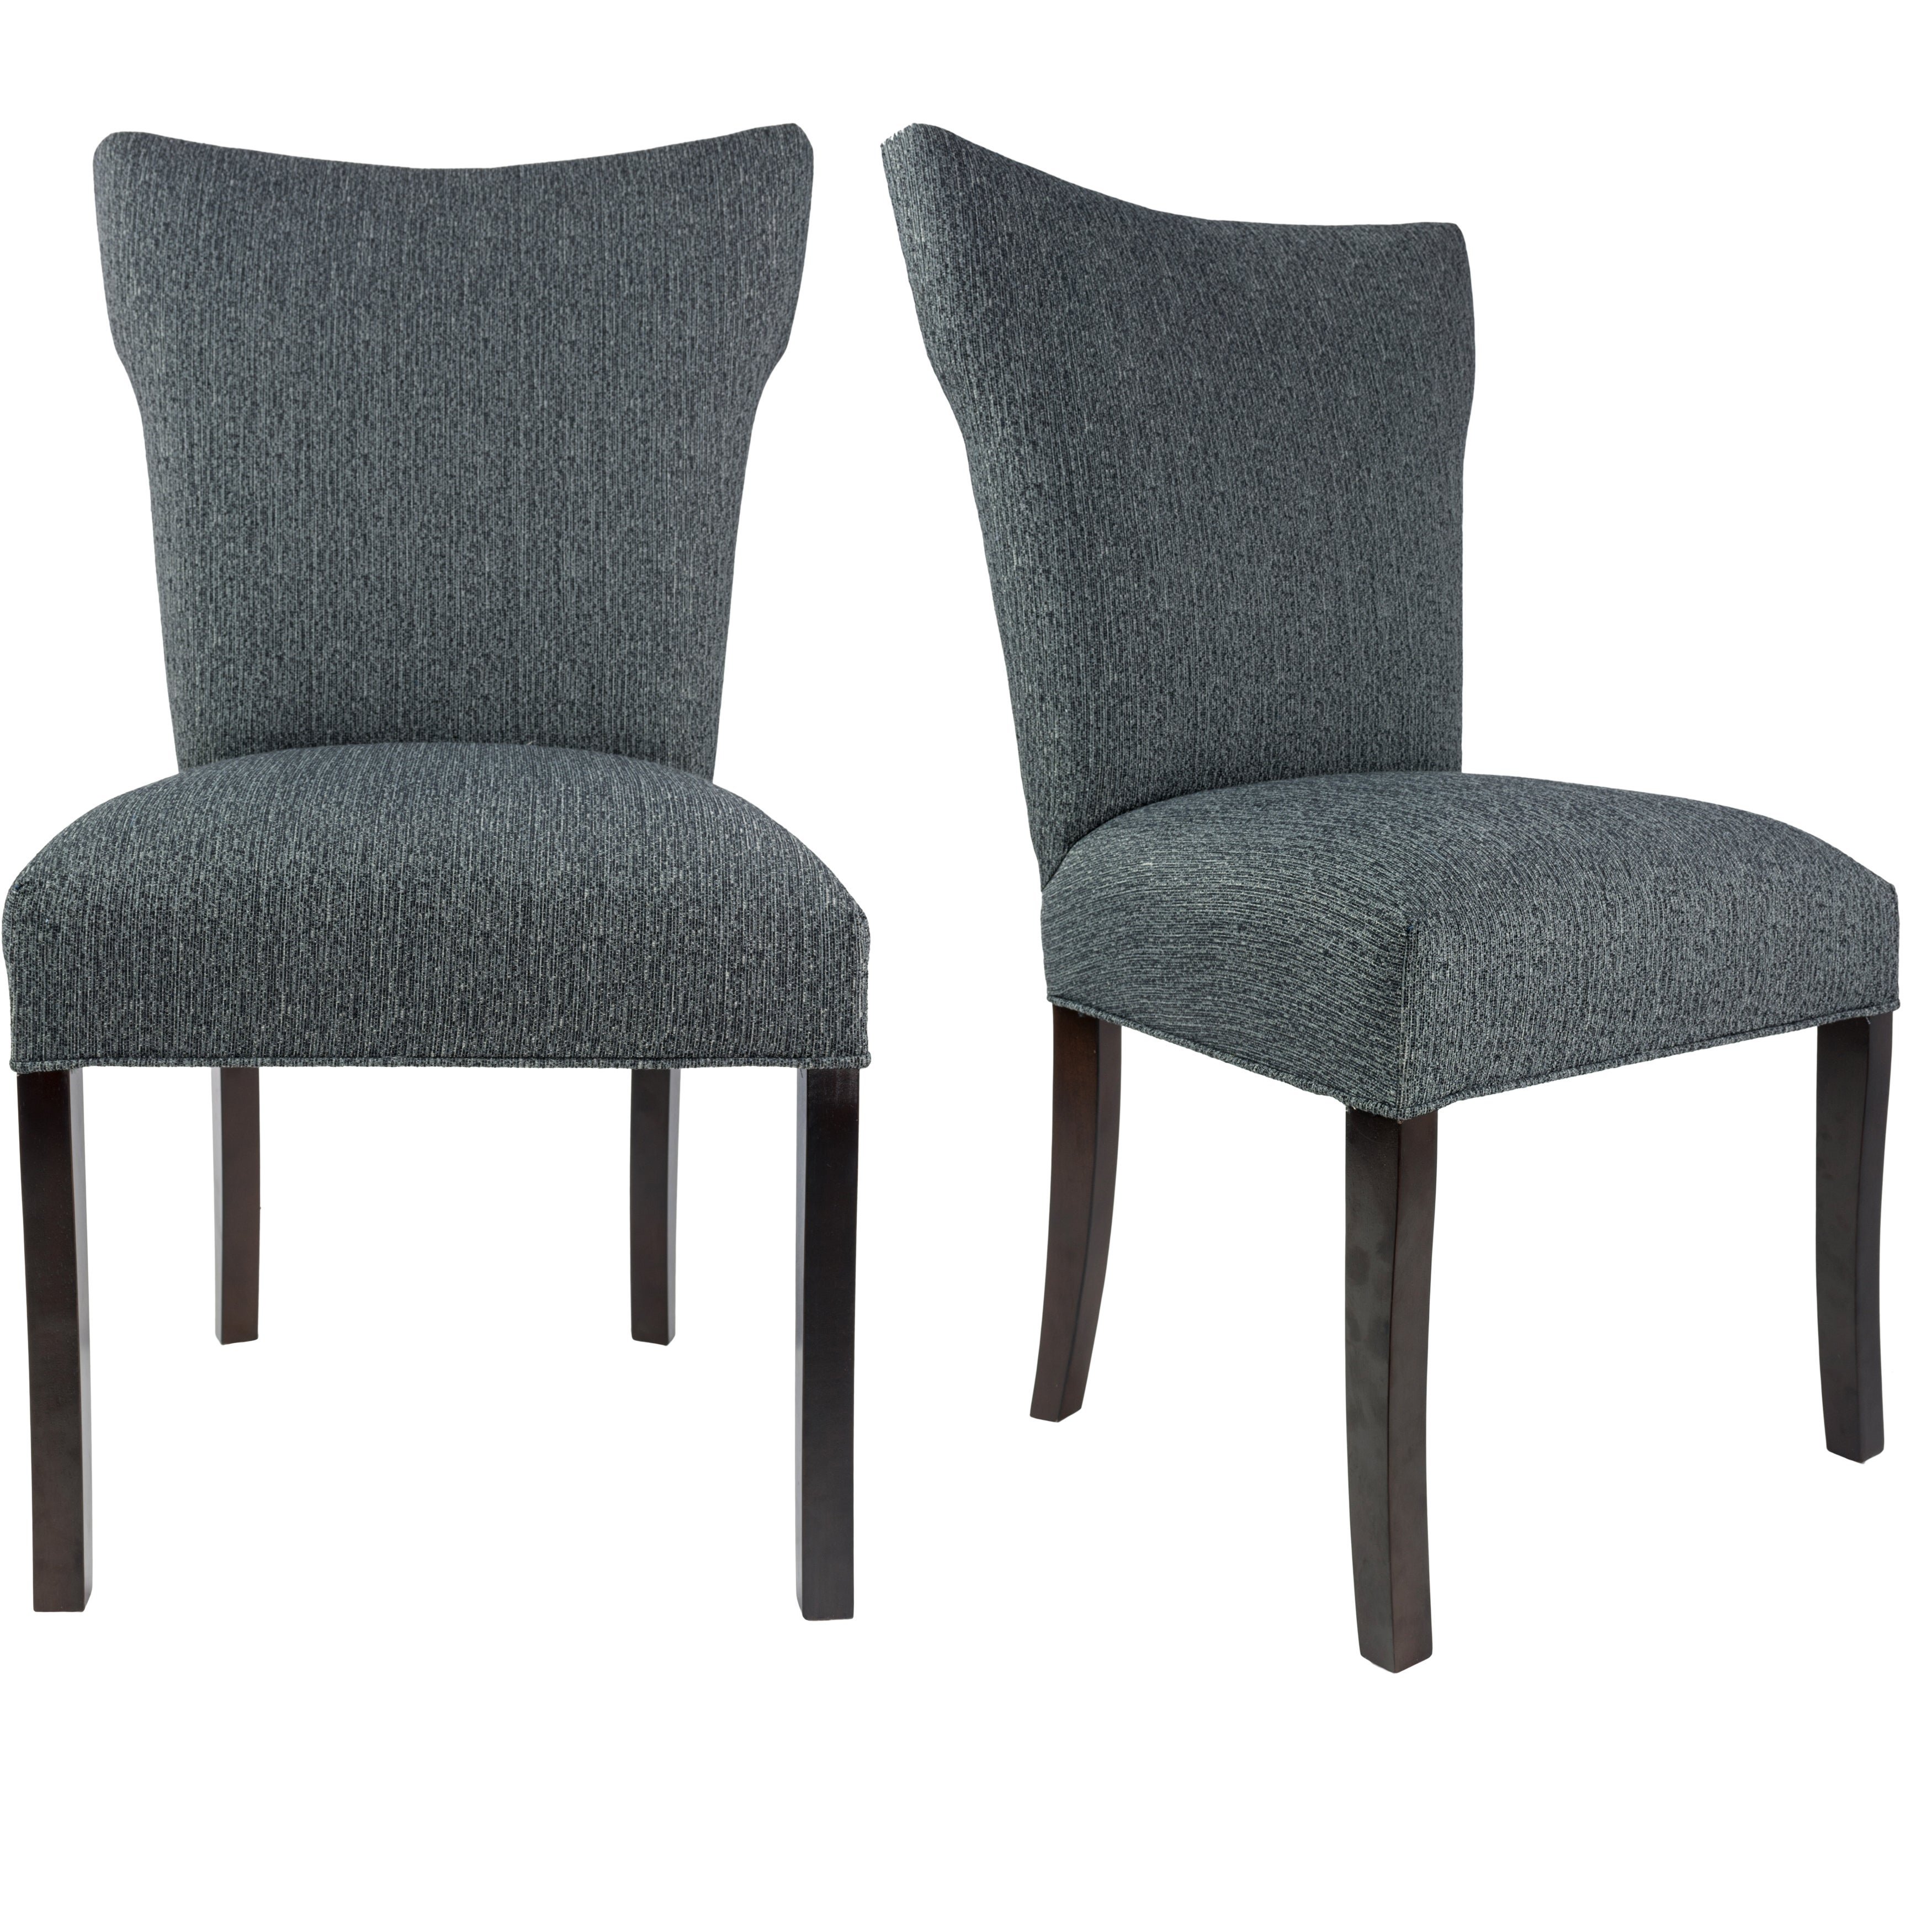 BELLA Collection OLIVIA Upholstered Contemporary Armless Dining Side